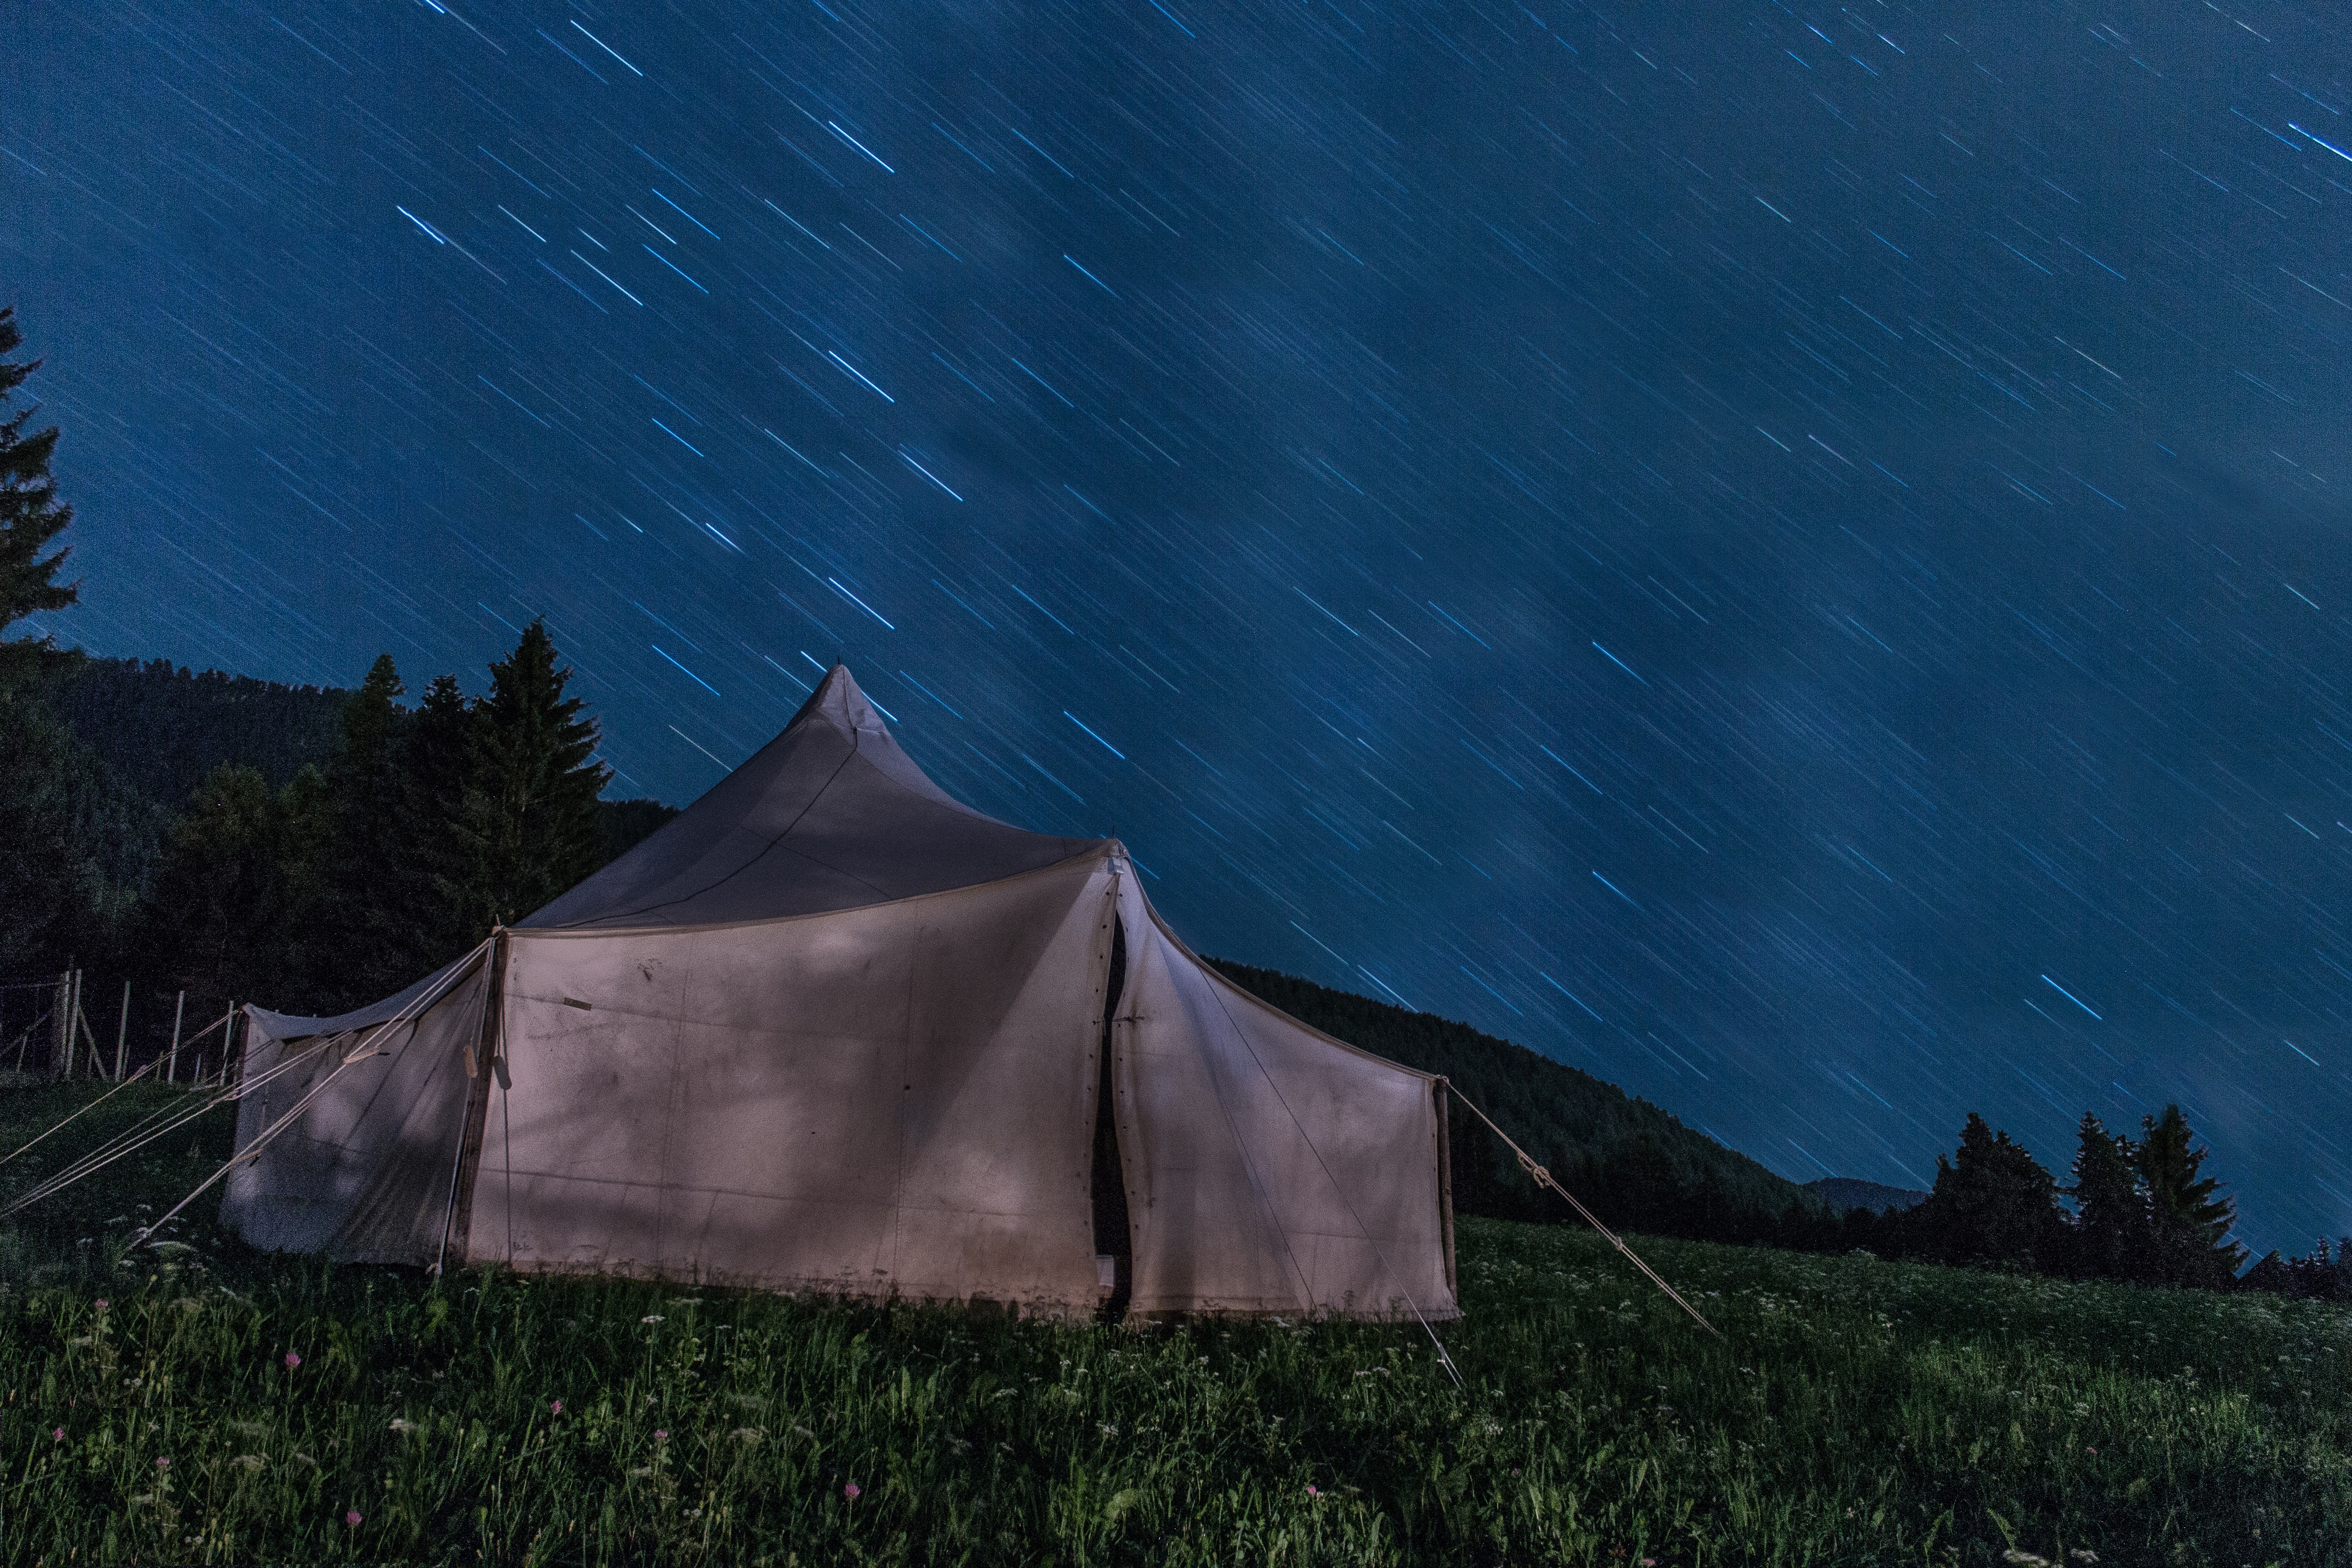 Brown Tent on Green Grass during Night Time · Free Stock Photo